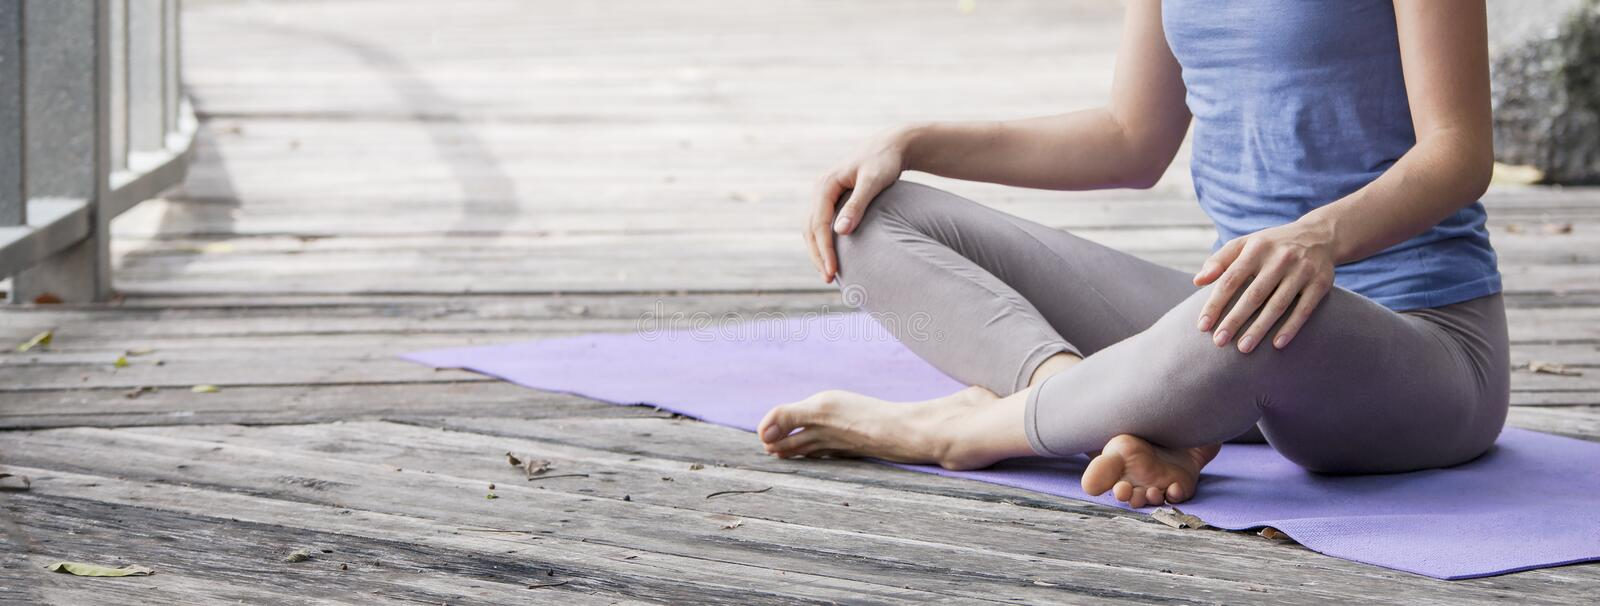 Young woman practicing yoga during yoga retreat in Asia, Bali, meditation, relaxation in abandoned temple stock photos